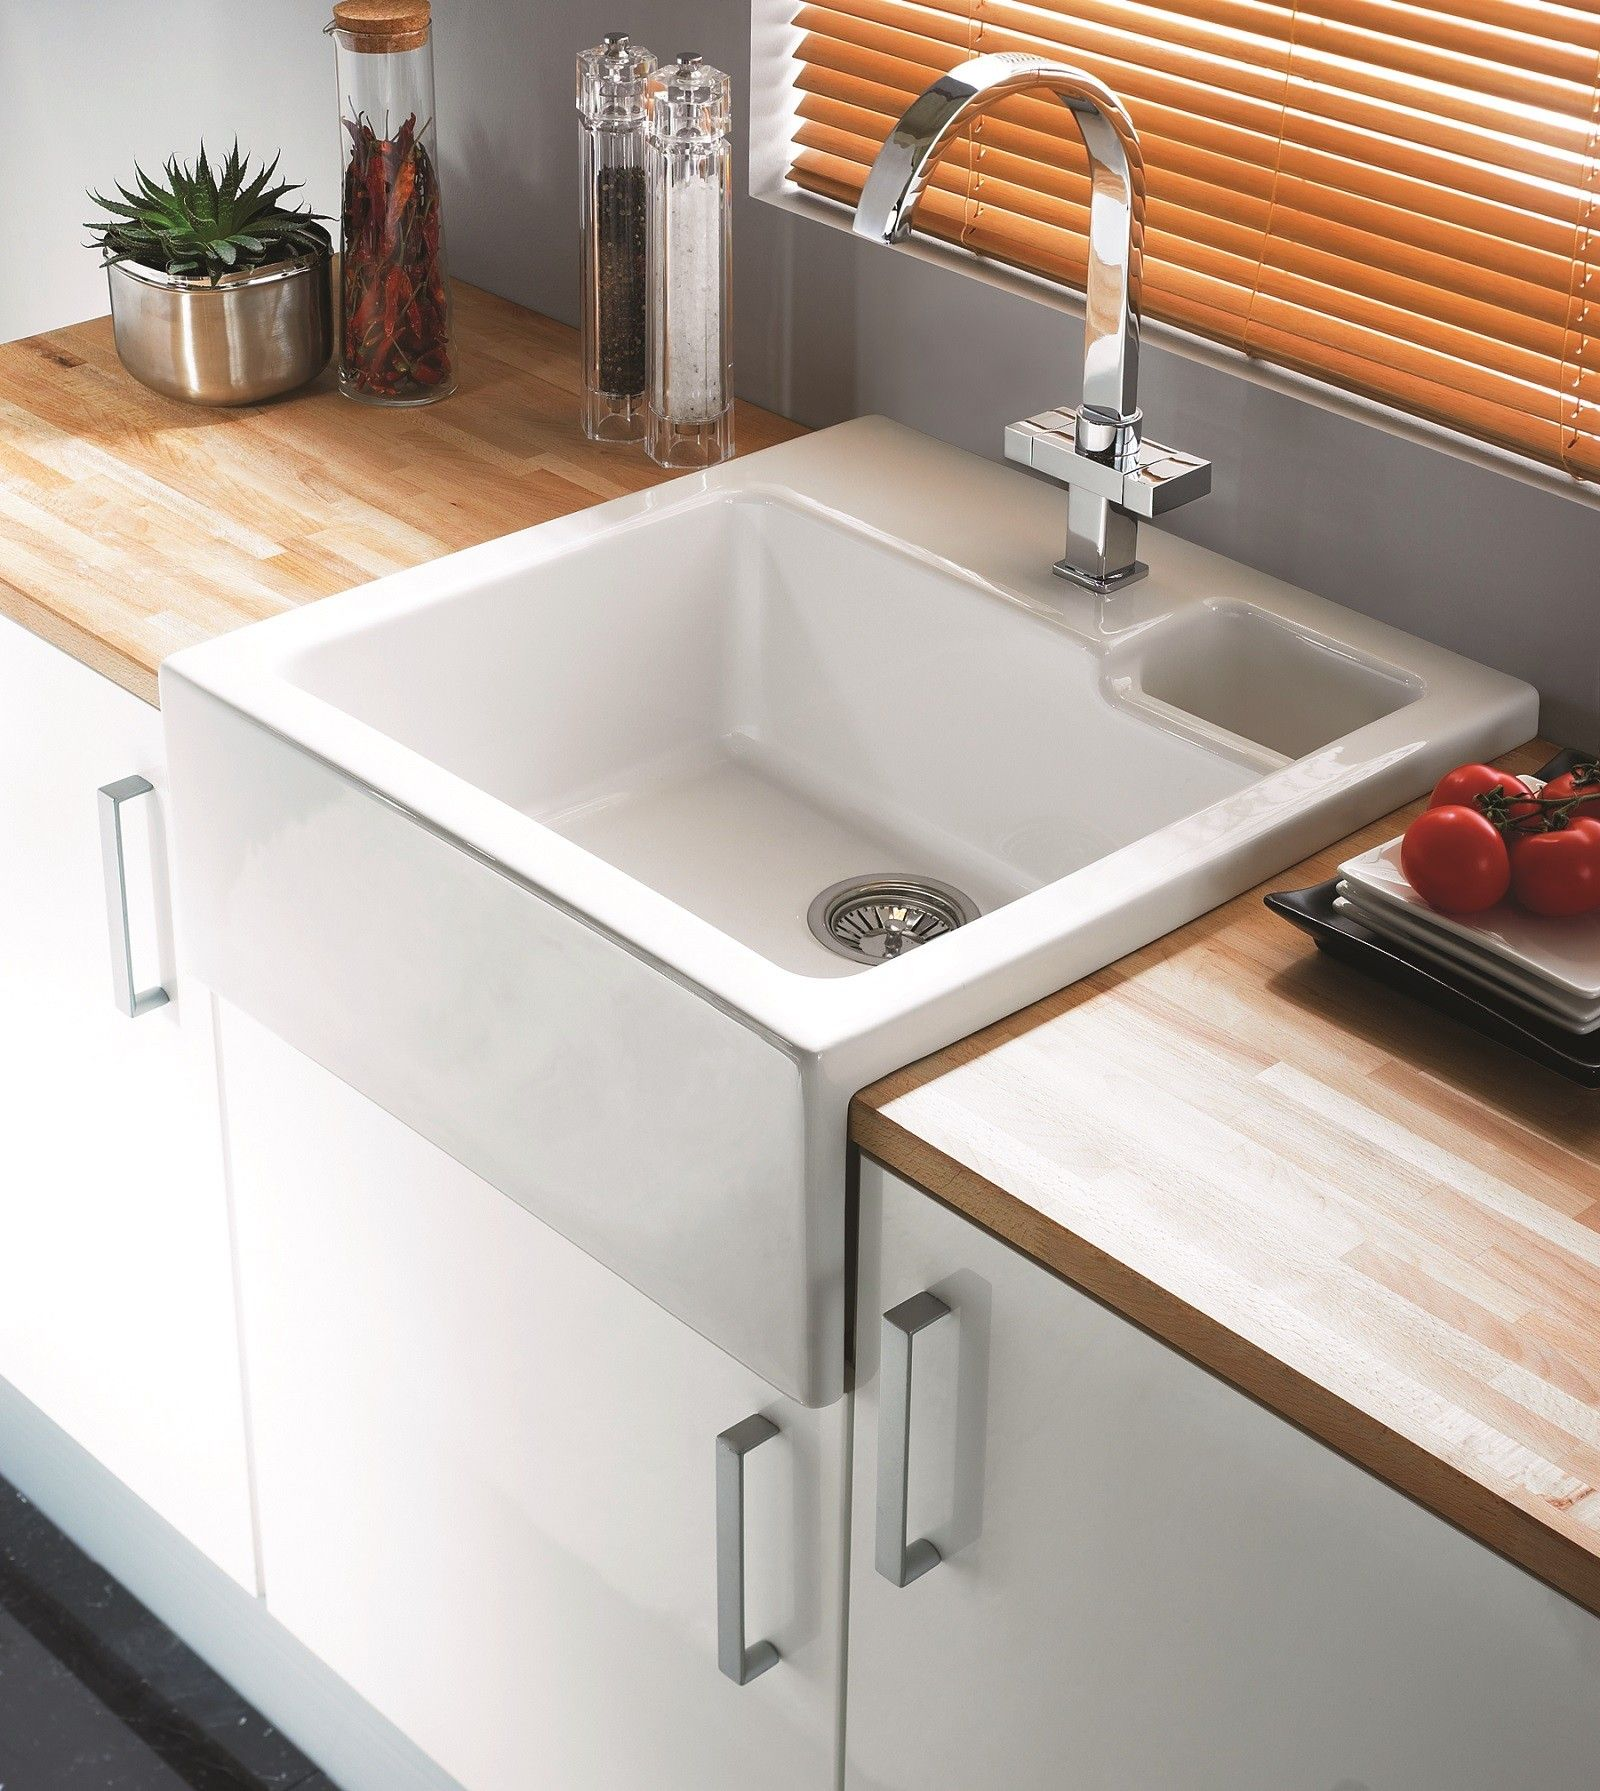 Farmhouse Sink Melbourne Belfast Sinks Taps Appear In Many American High End Home